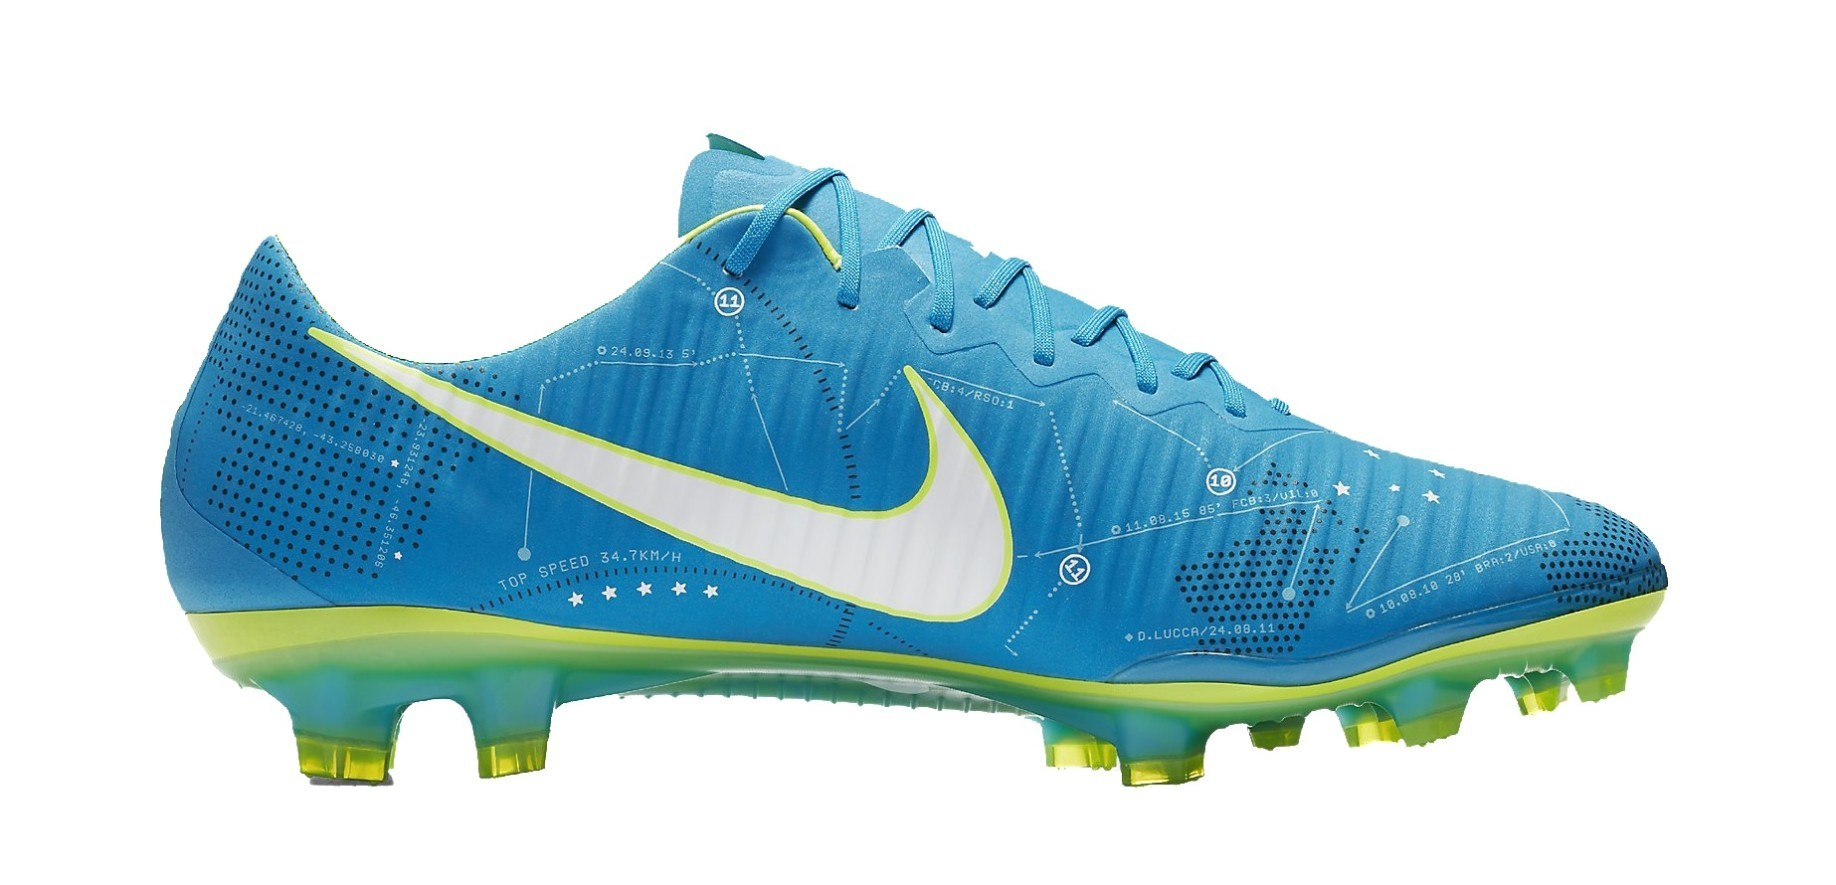 the best attitude b4301 66cdd Soccer shoes Nike Mercurial Vapor XI Neymar FG